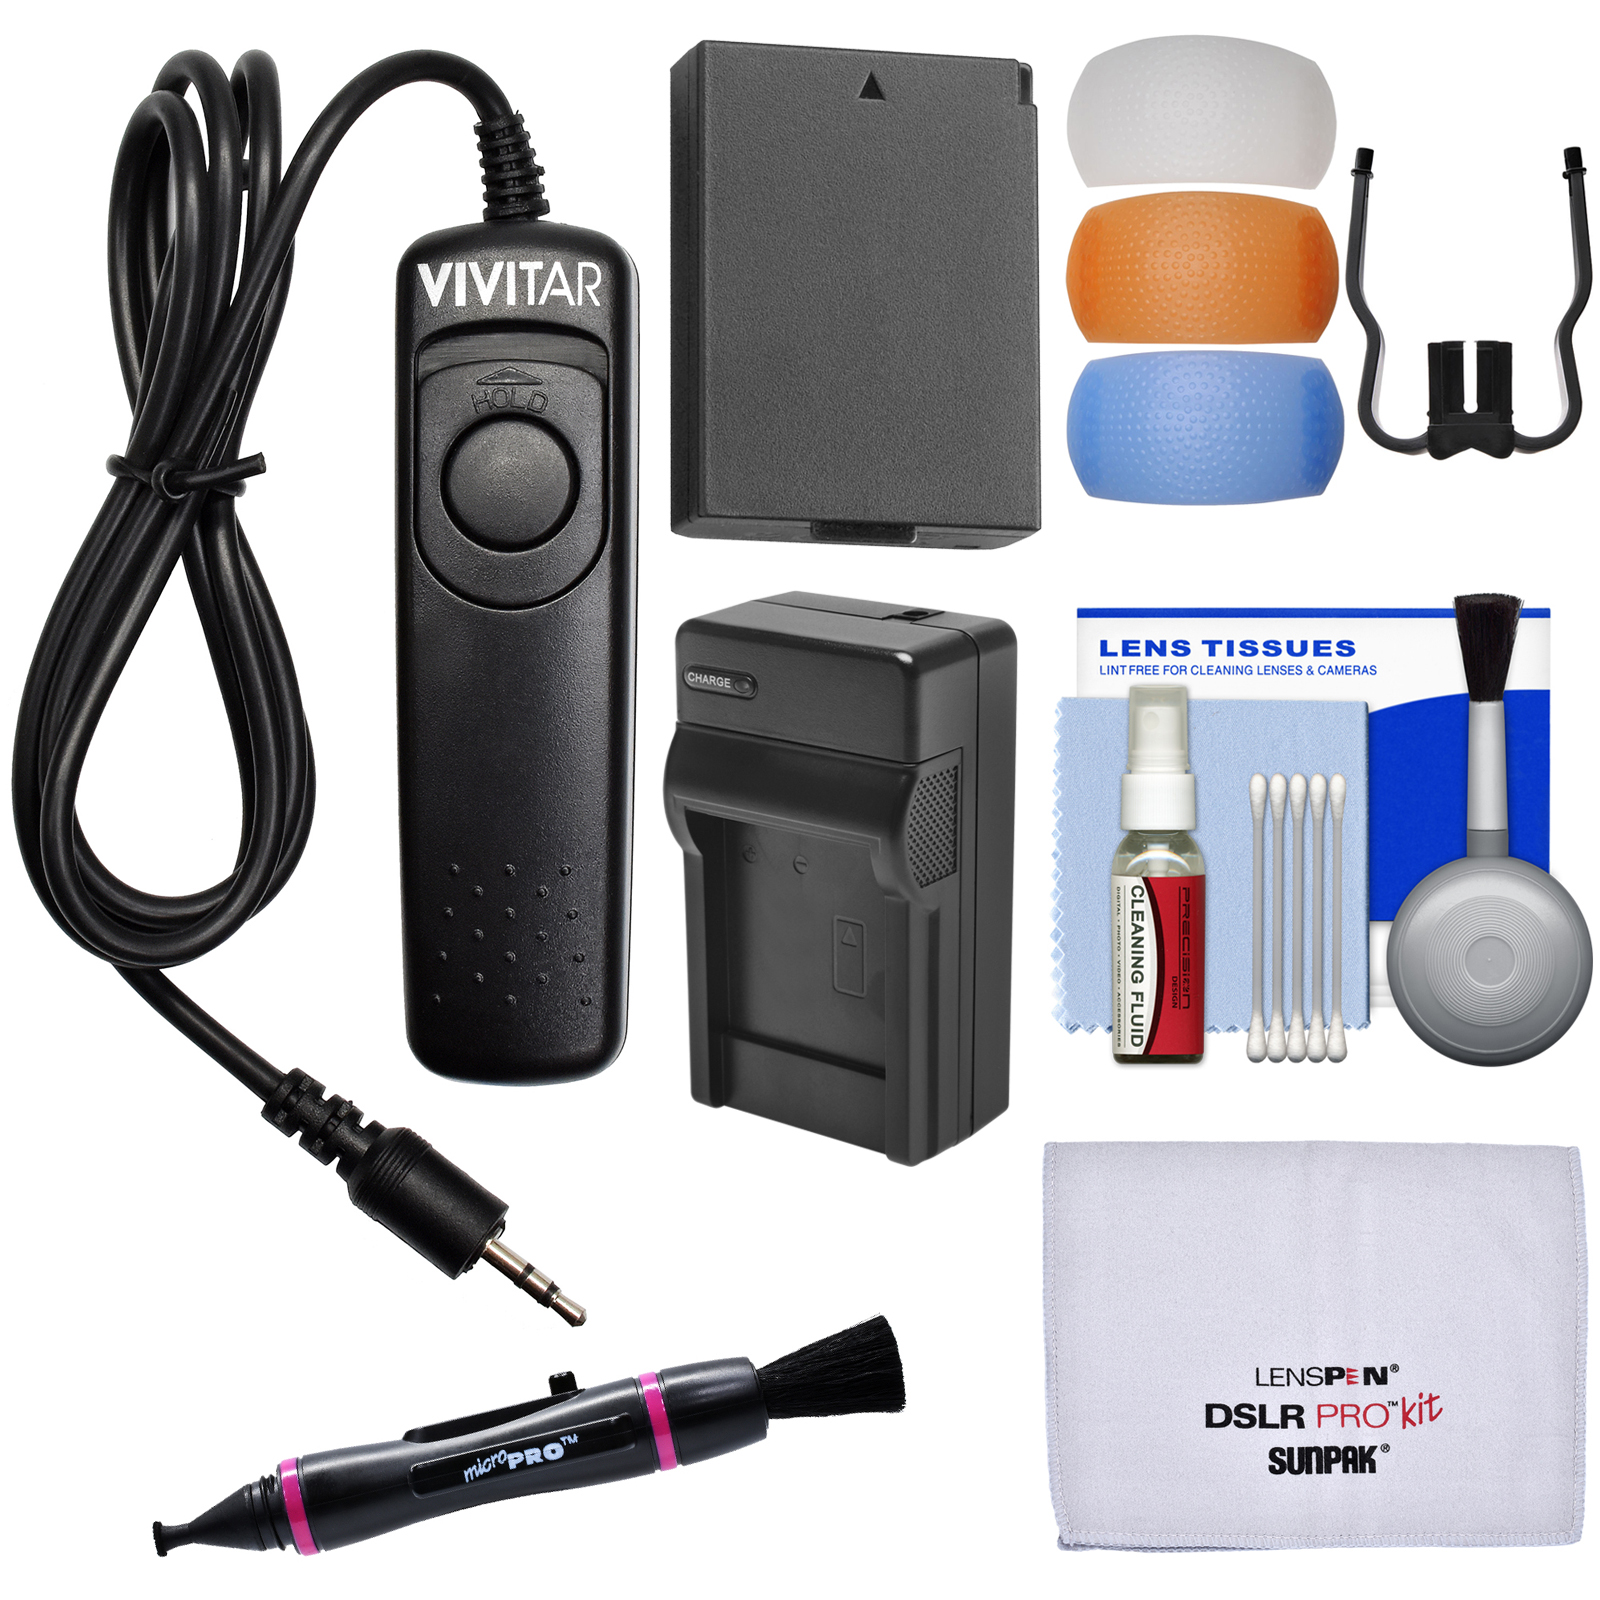 Vivitar RS-60E3 Remote Shutter Release for Canon Cameras with LP-E10 Battery & Charger + Kit for EOS Rebel T5 & T6 DSLR Cameras